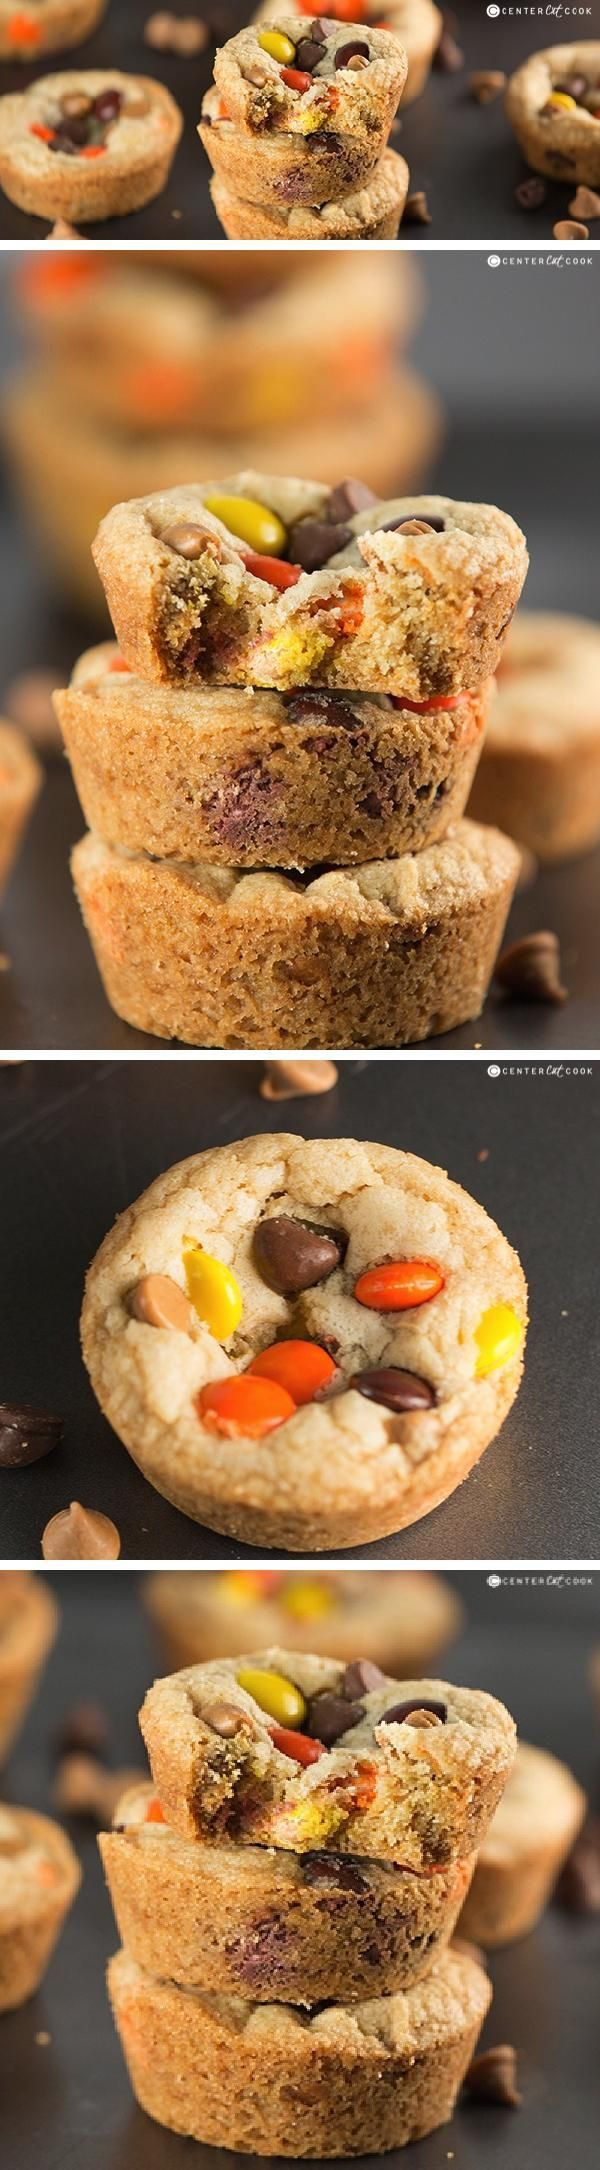 REESE'S COOKIE CUPS are loaded with Reese's Pieces and peanut butter chips for the ultimate cookie made from scratch!